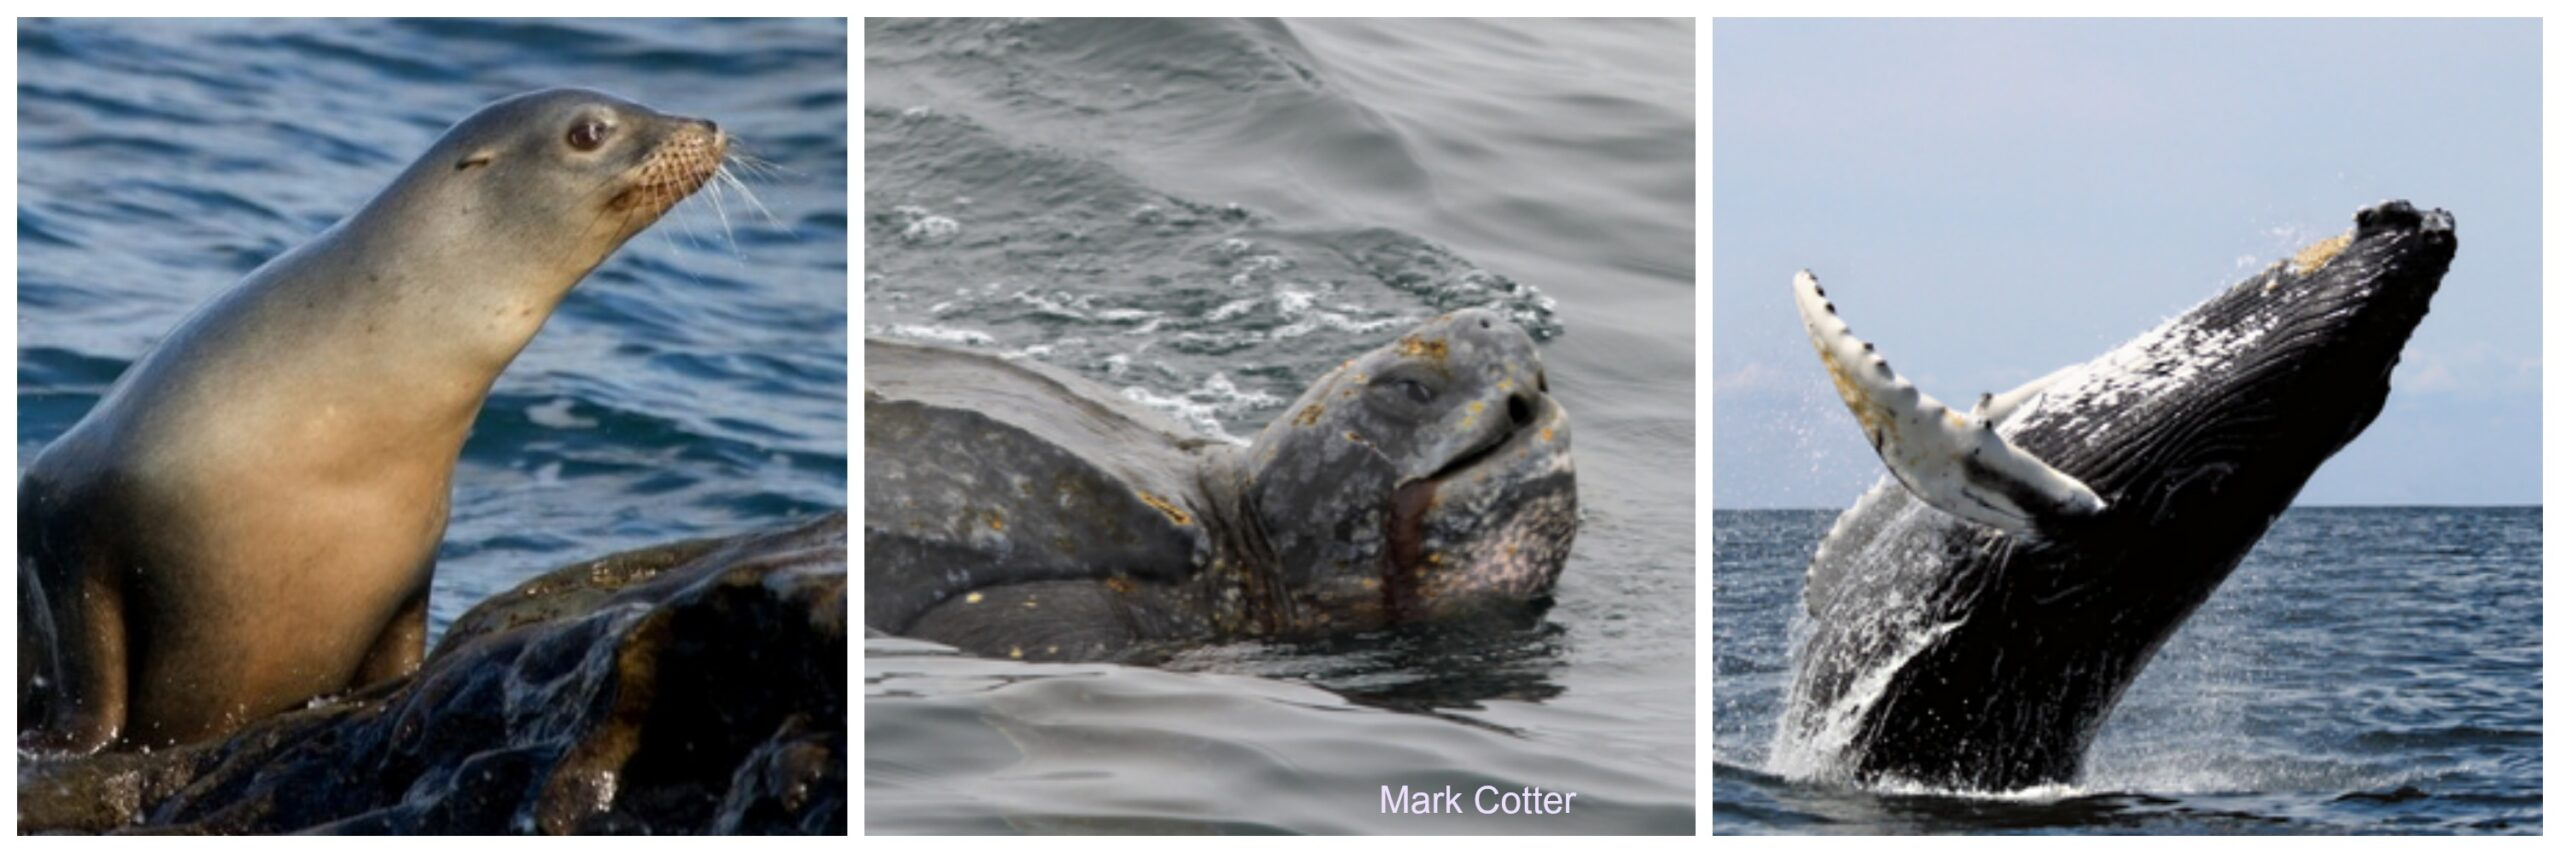 Senate Bill 1114 to Phase out the California Driftnet Fishery and Protect Marine Wildlife Moves Through Senate Committee on Natural Resources and Water